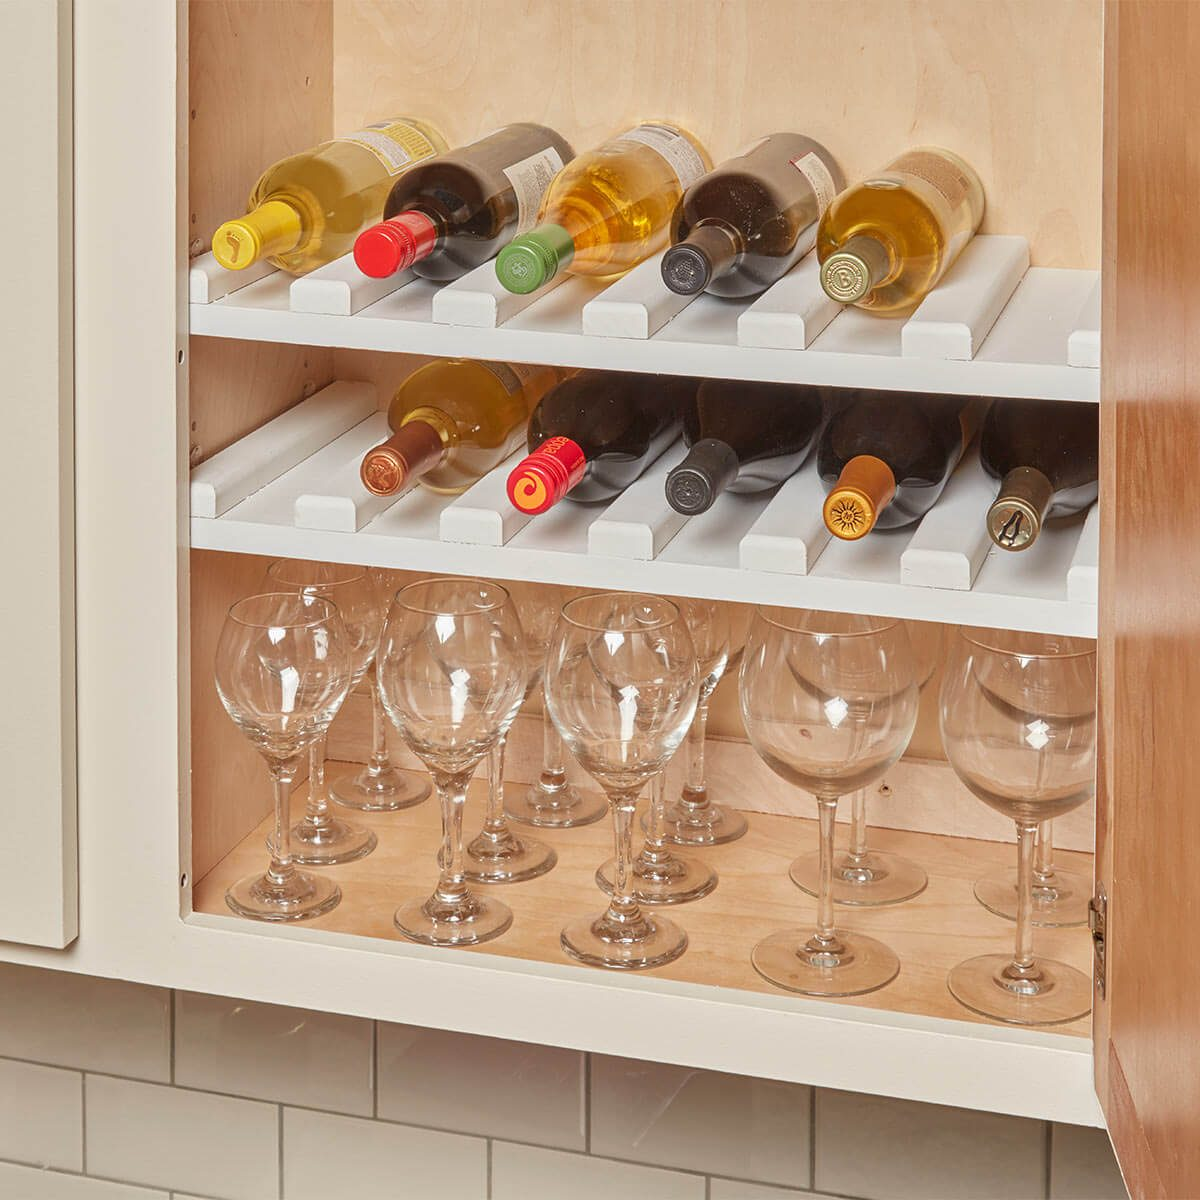 Easy-to-Make Wine Rack Cabinet